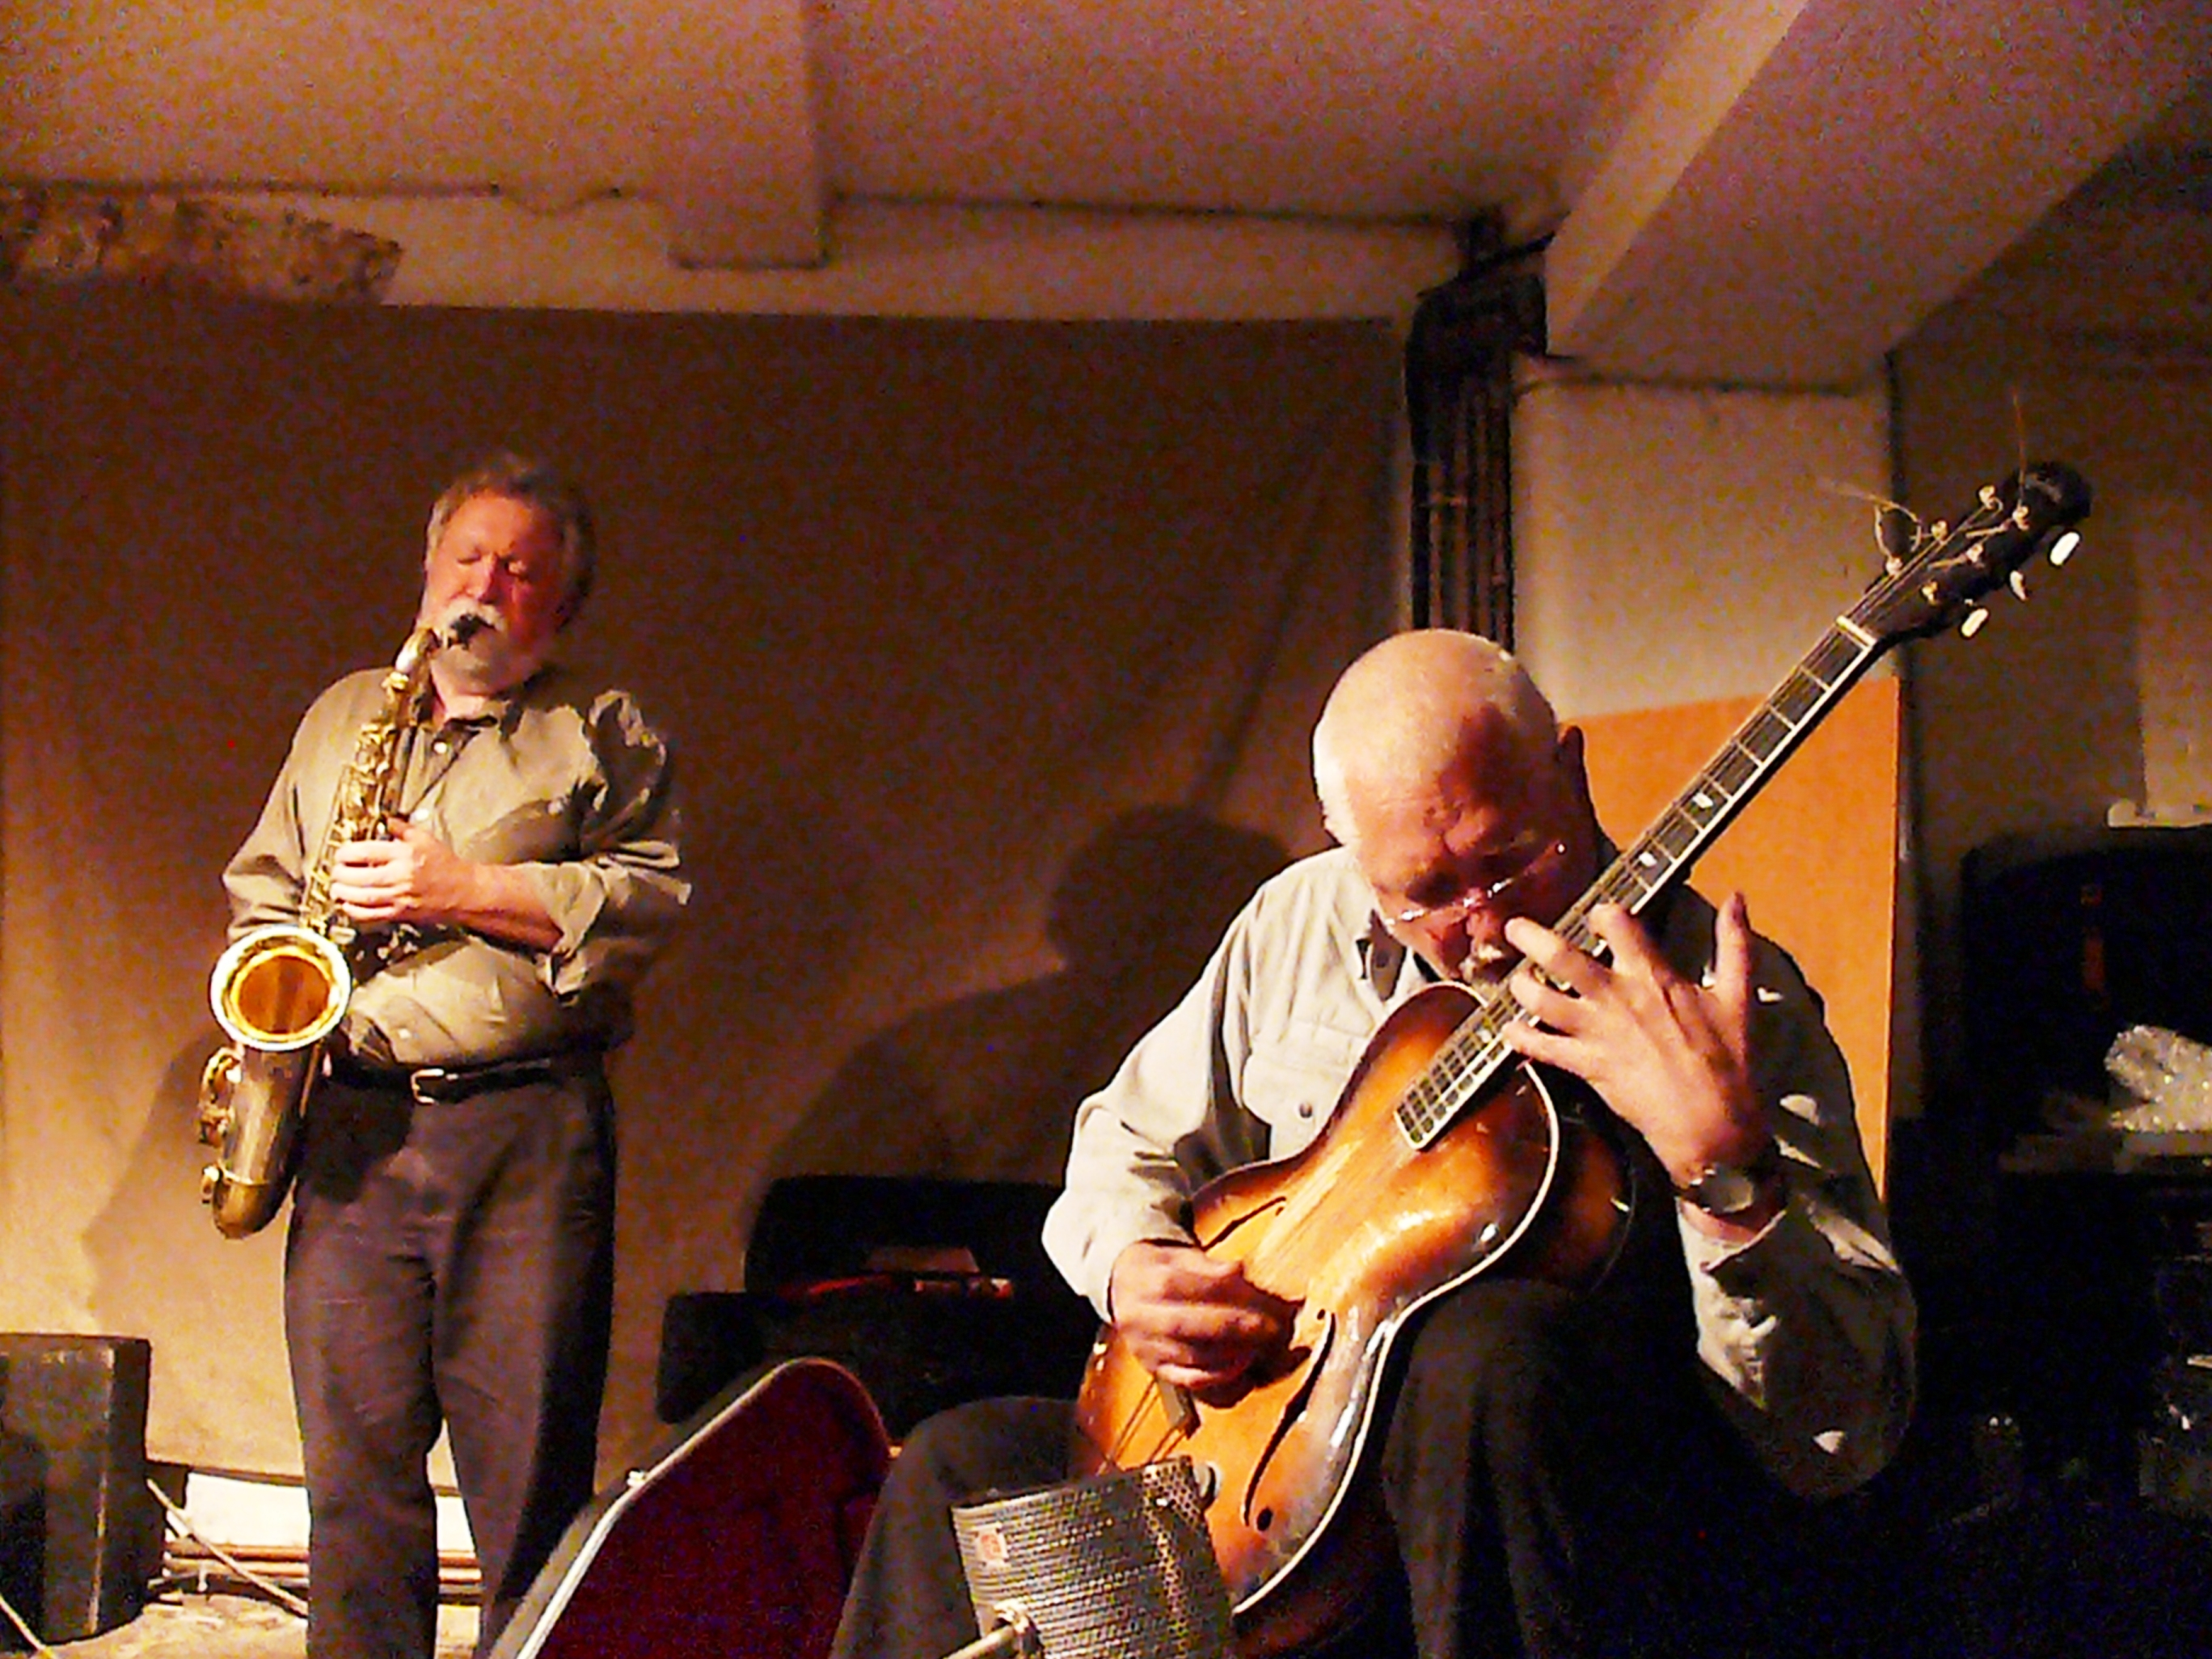 Evan Parker and John Russell at Cafe Oto, London in May 2011